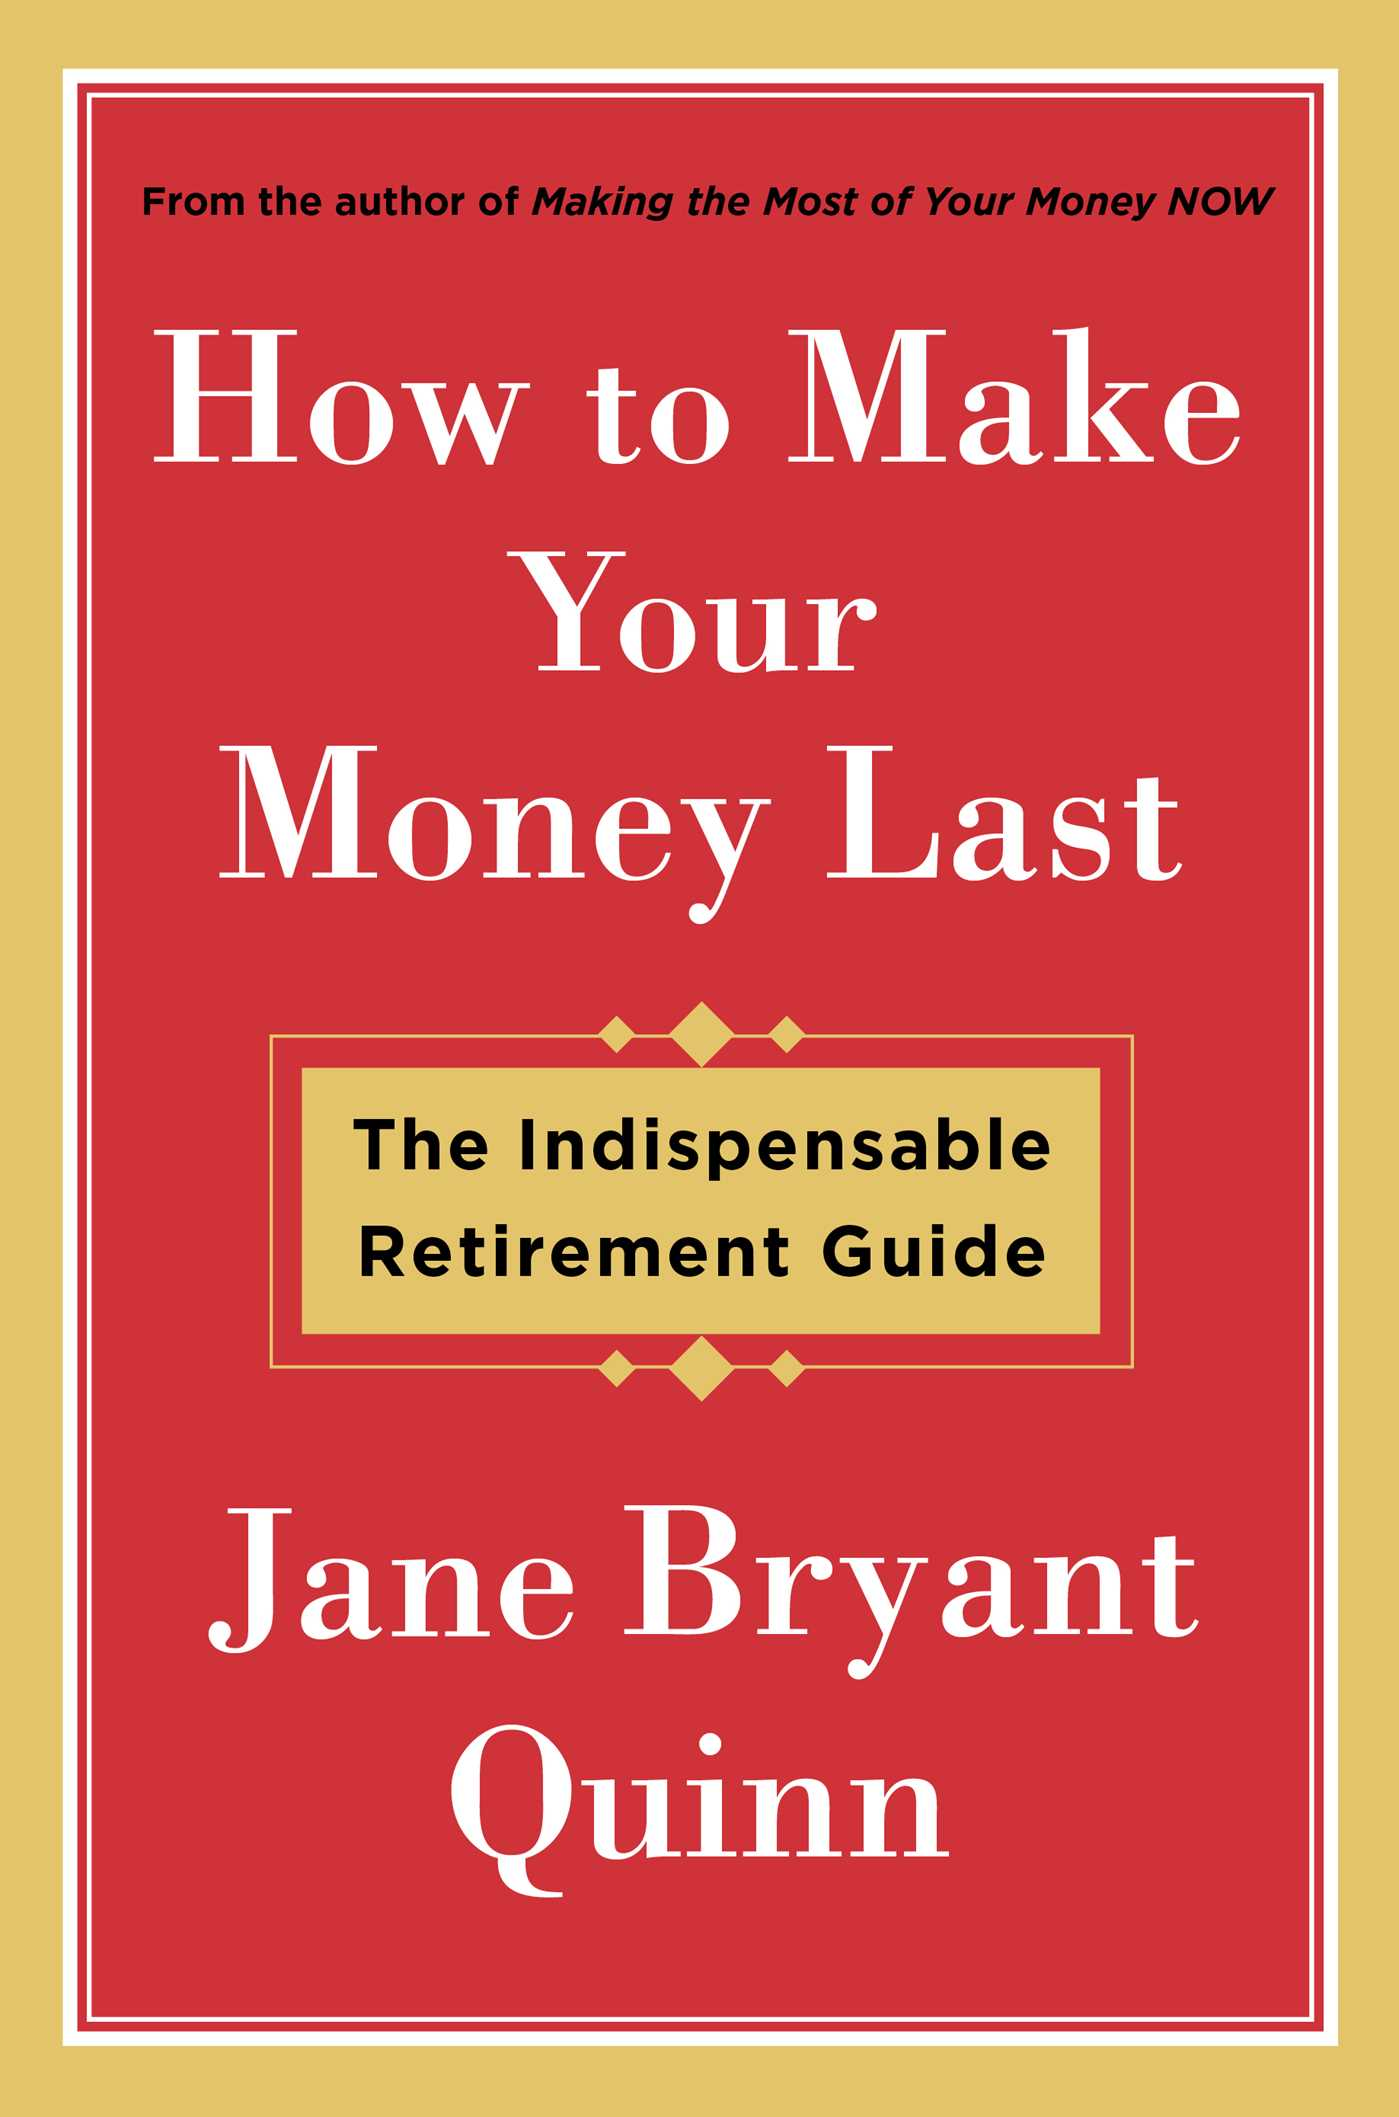 How-to-make-your-money-last-9781476743769_hr